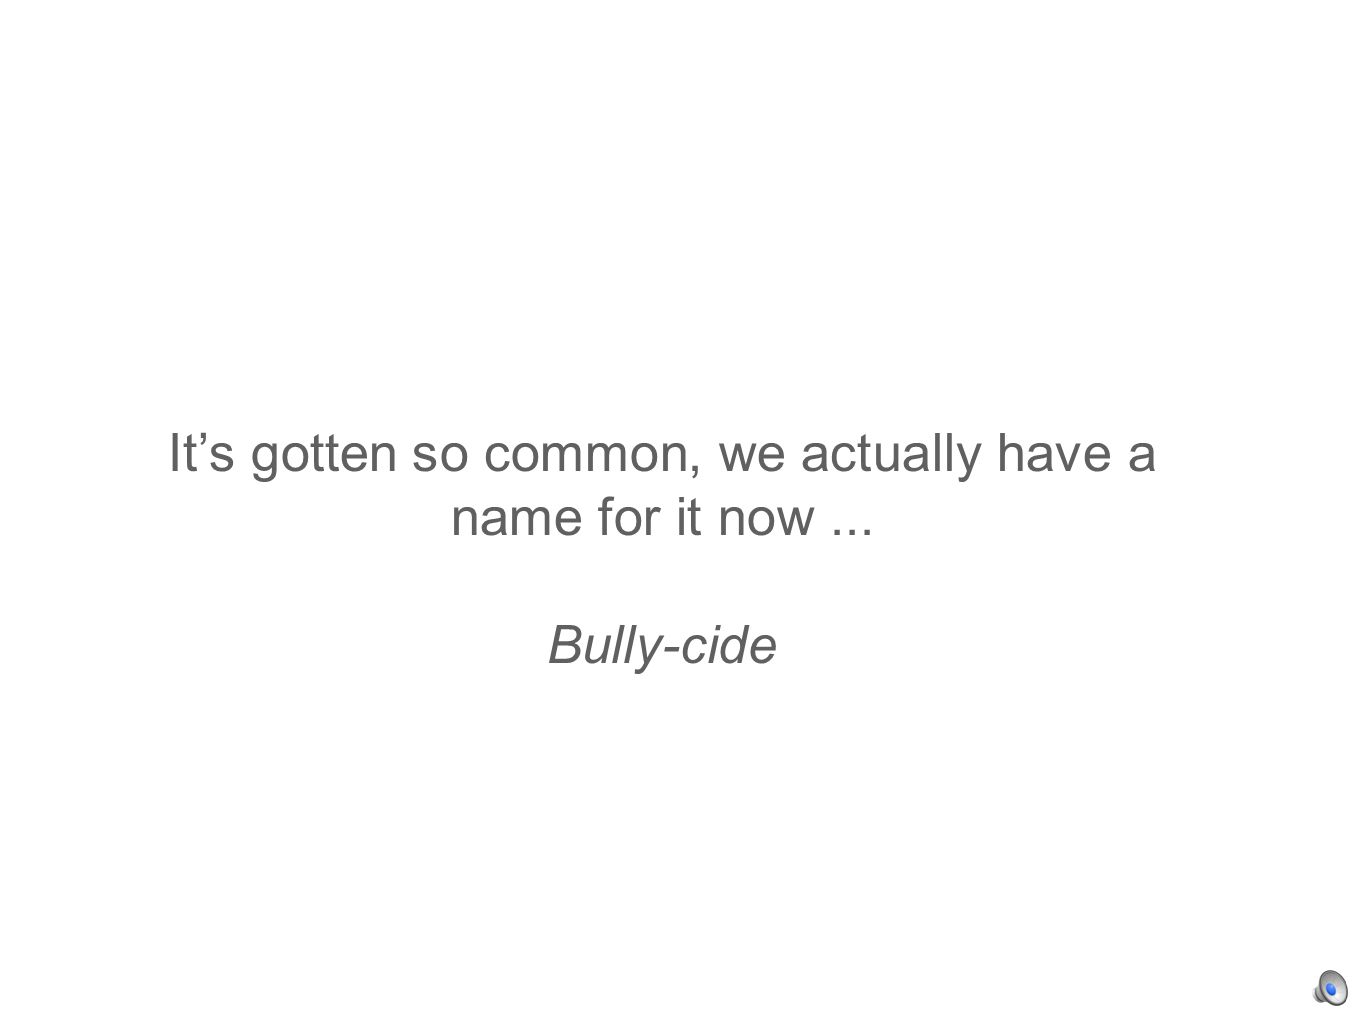 Its gotten so common, we actually have a name for it now... Bully-cide